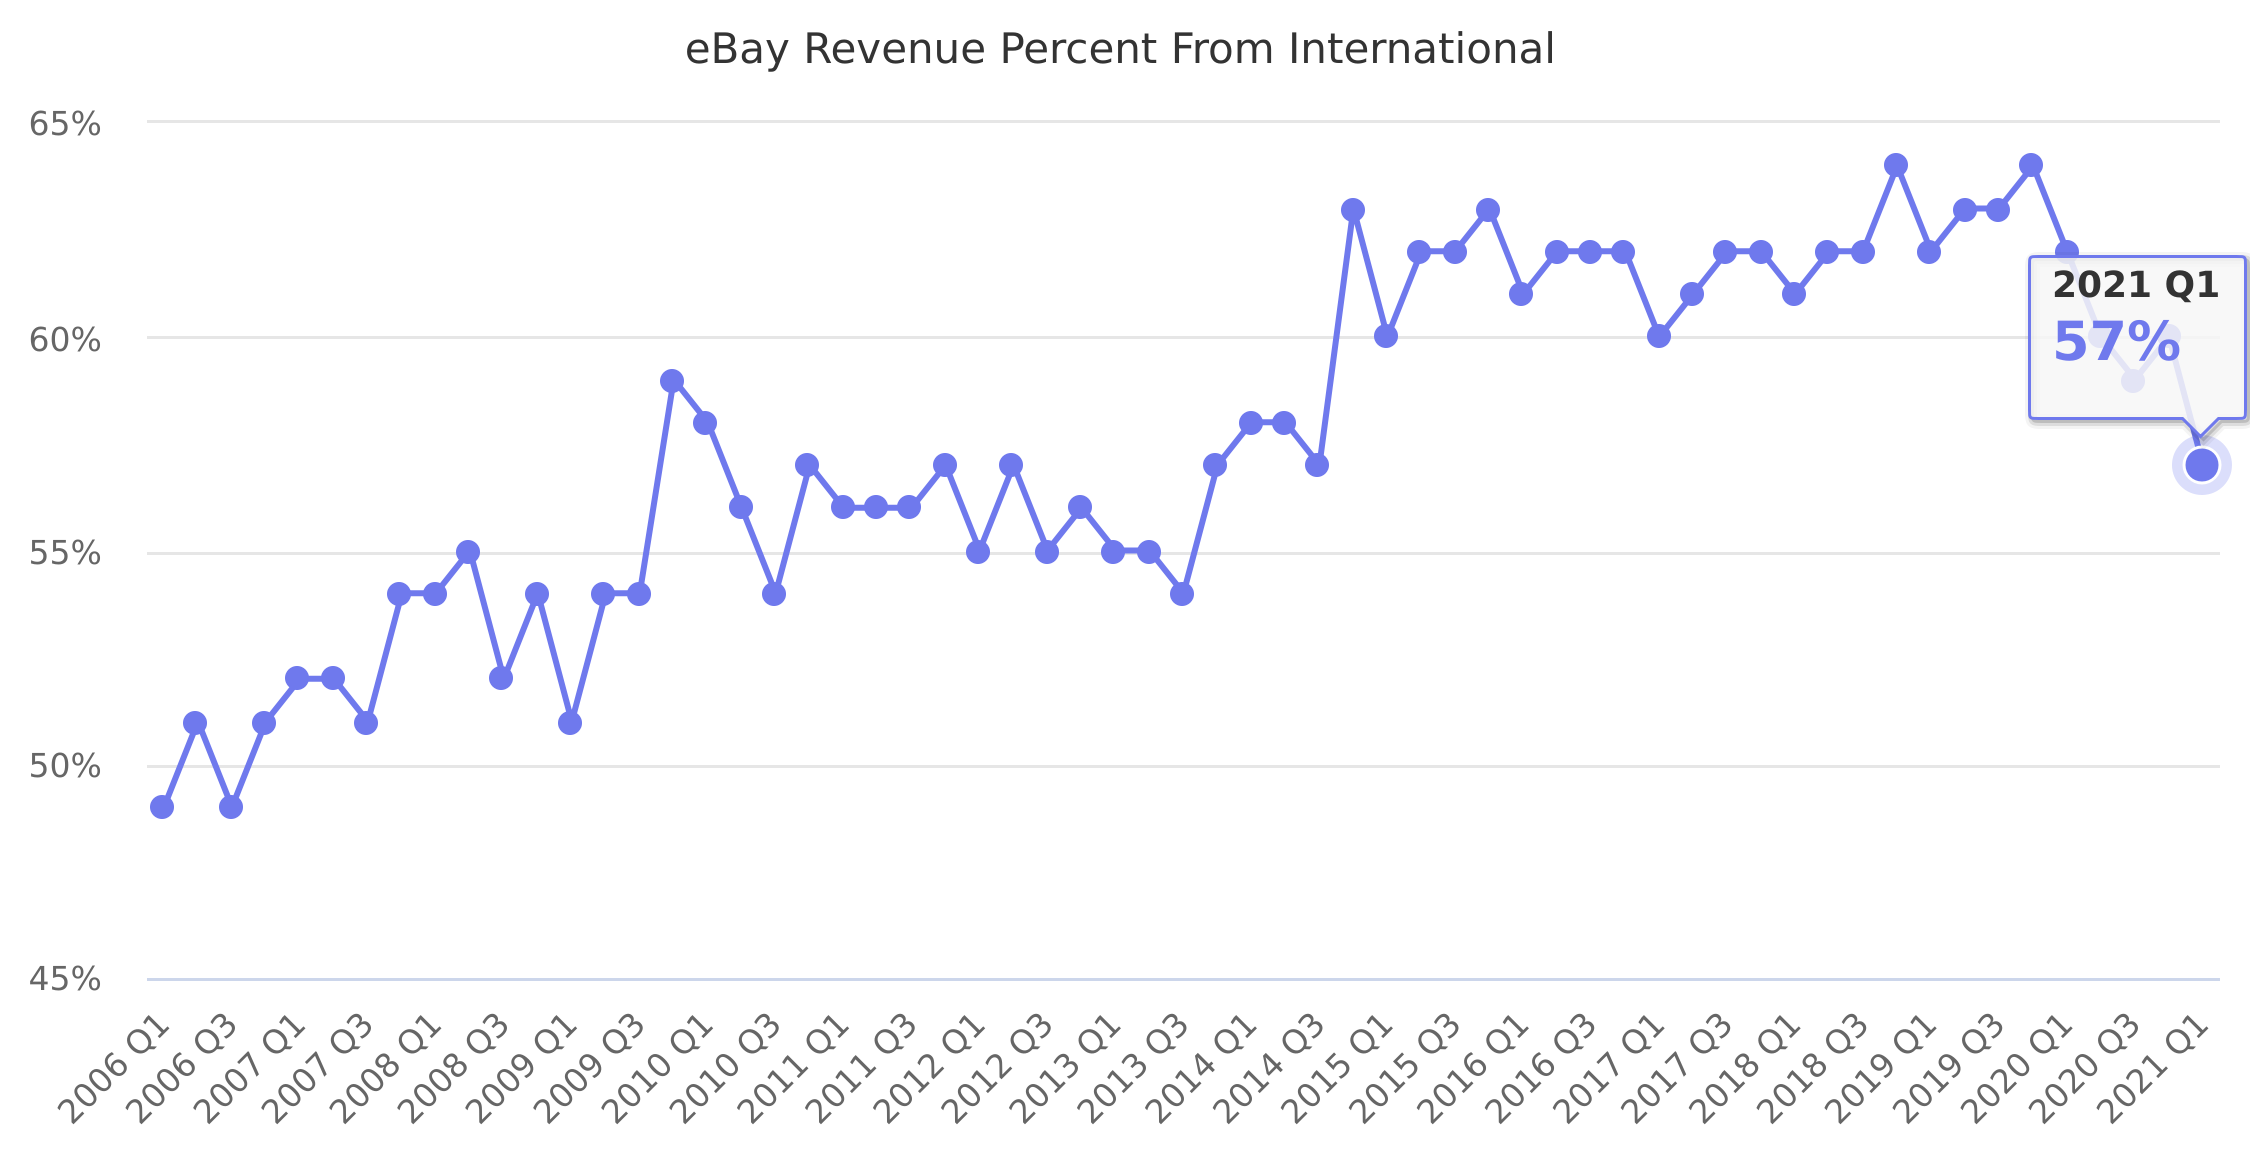 eBay Revenue Percent From International 2006-2018